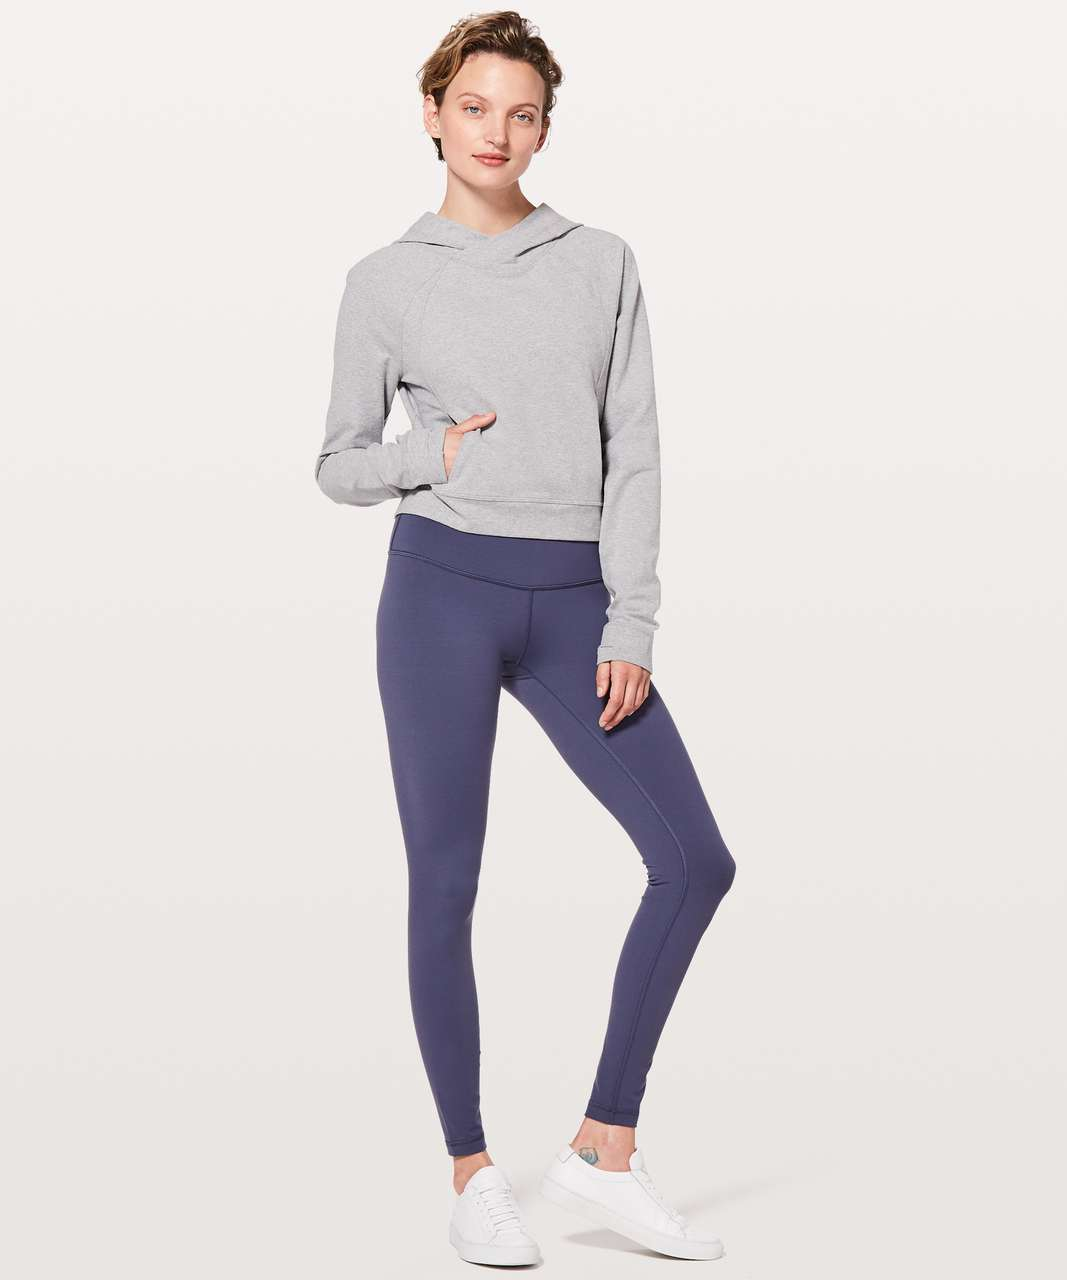 Lululemon Nice & Natural Popover - Heathered Medium Grey